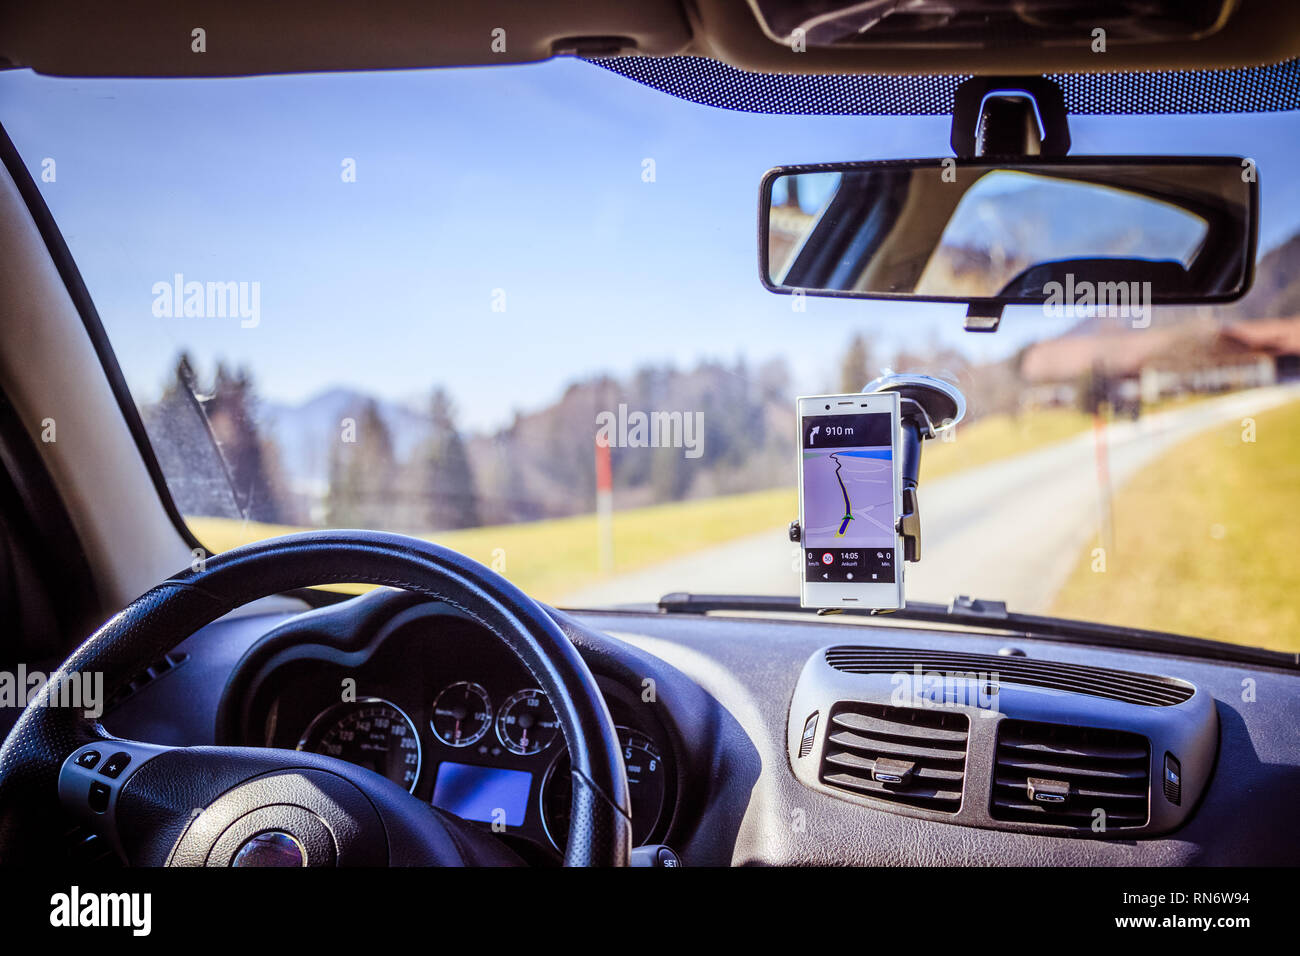 Interior of a modern car on a sunny day. Smartphone on mobile mount, used as navigation device - Stock Image